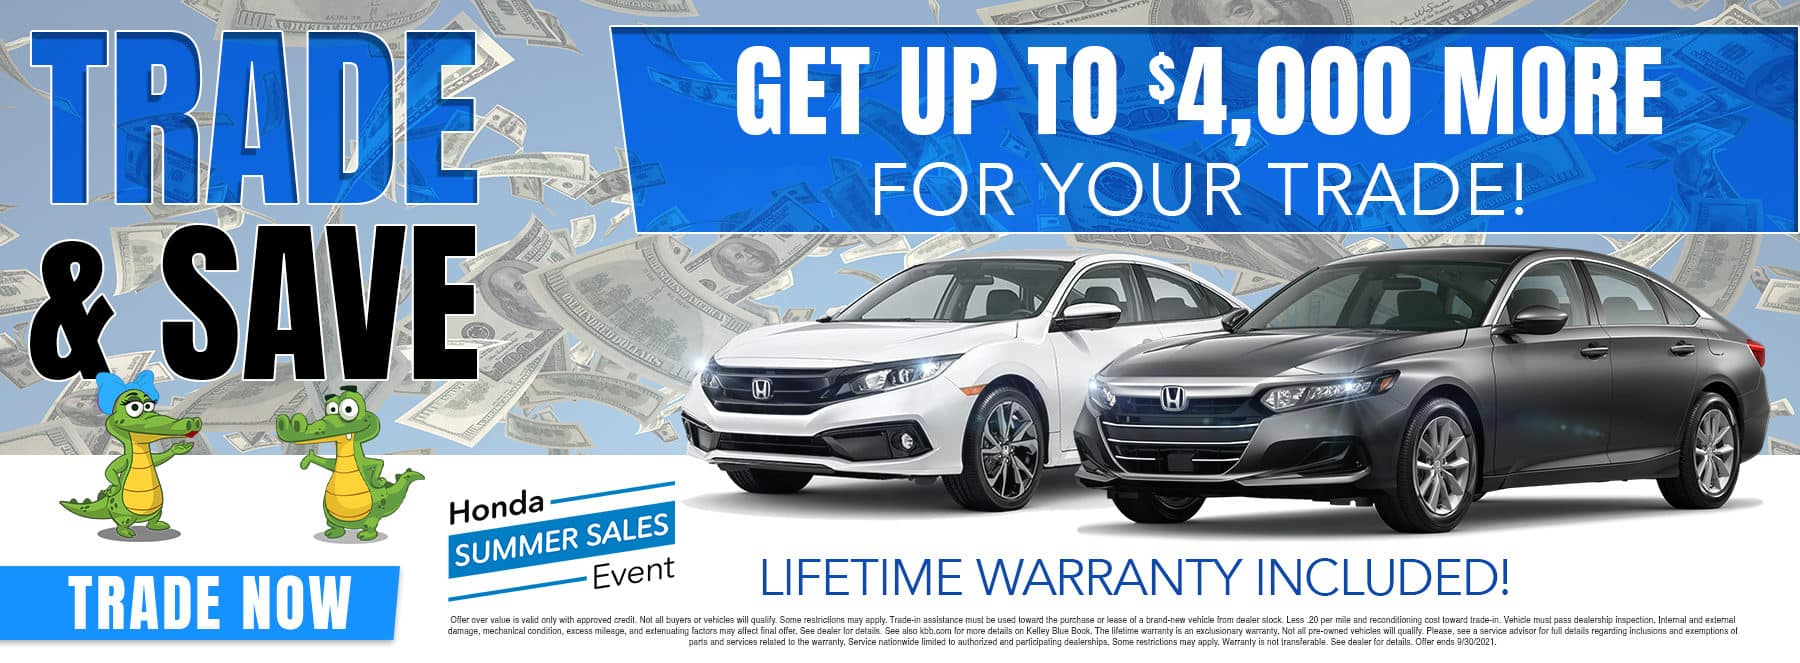 Trade & Save | Get Up To $4,000 More For Your Trade! | Lifetime Warranty Included!